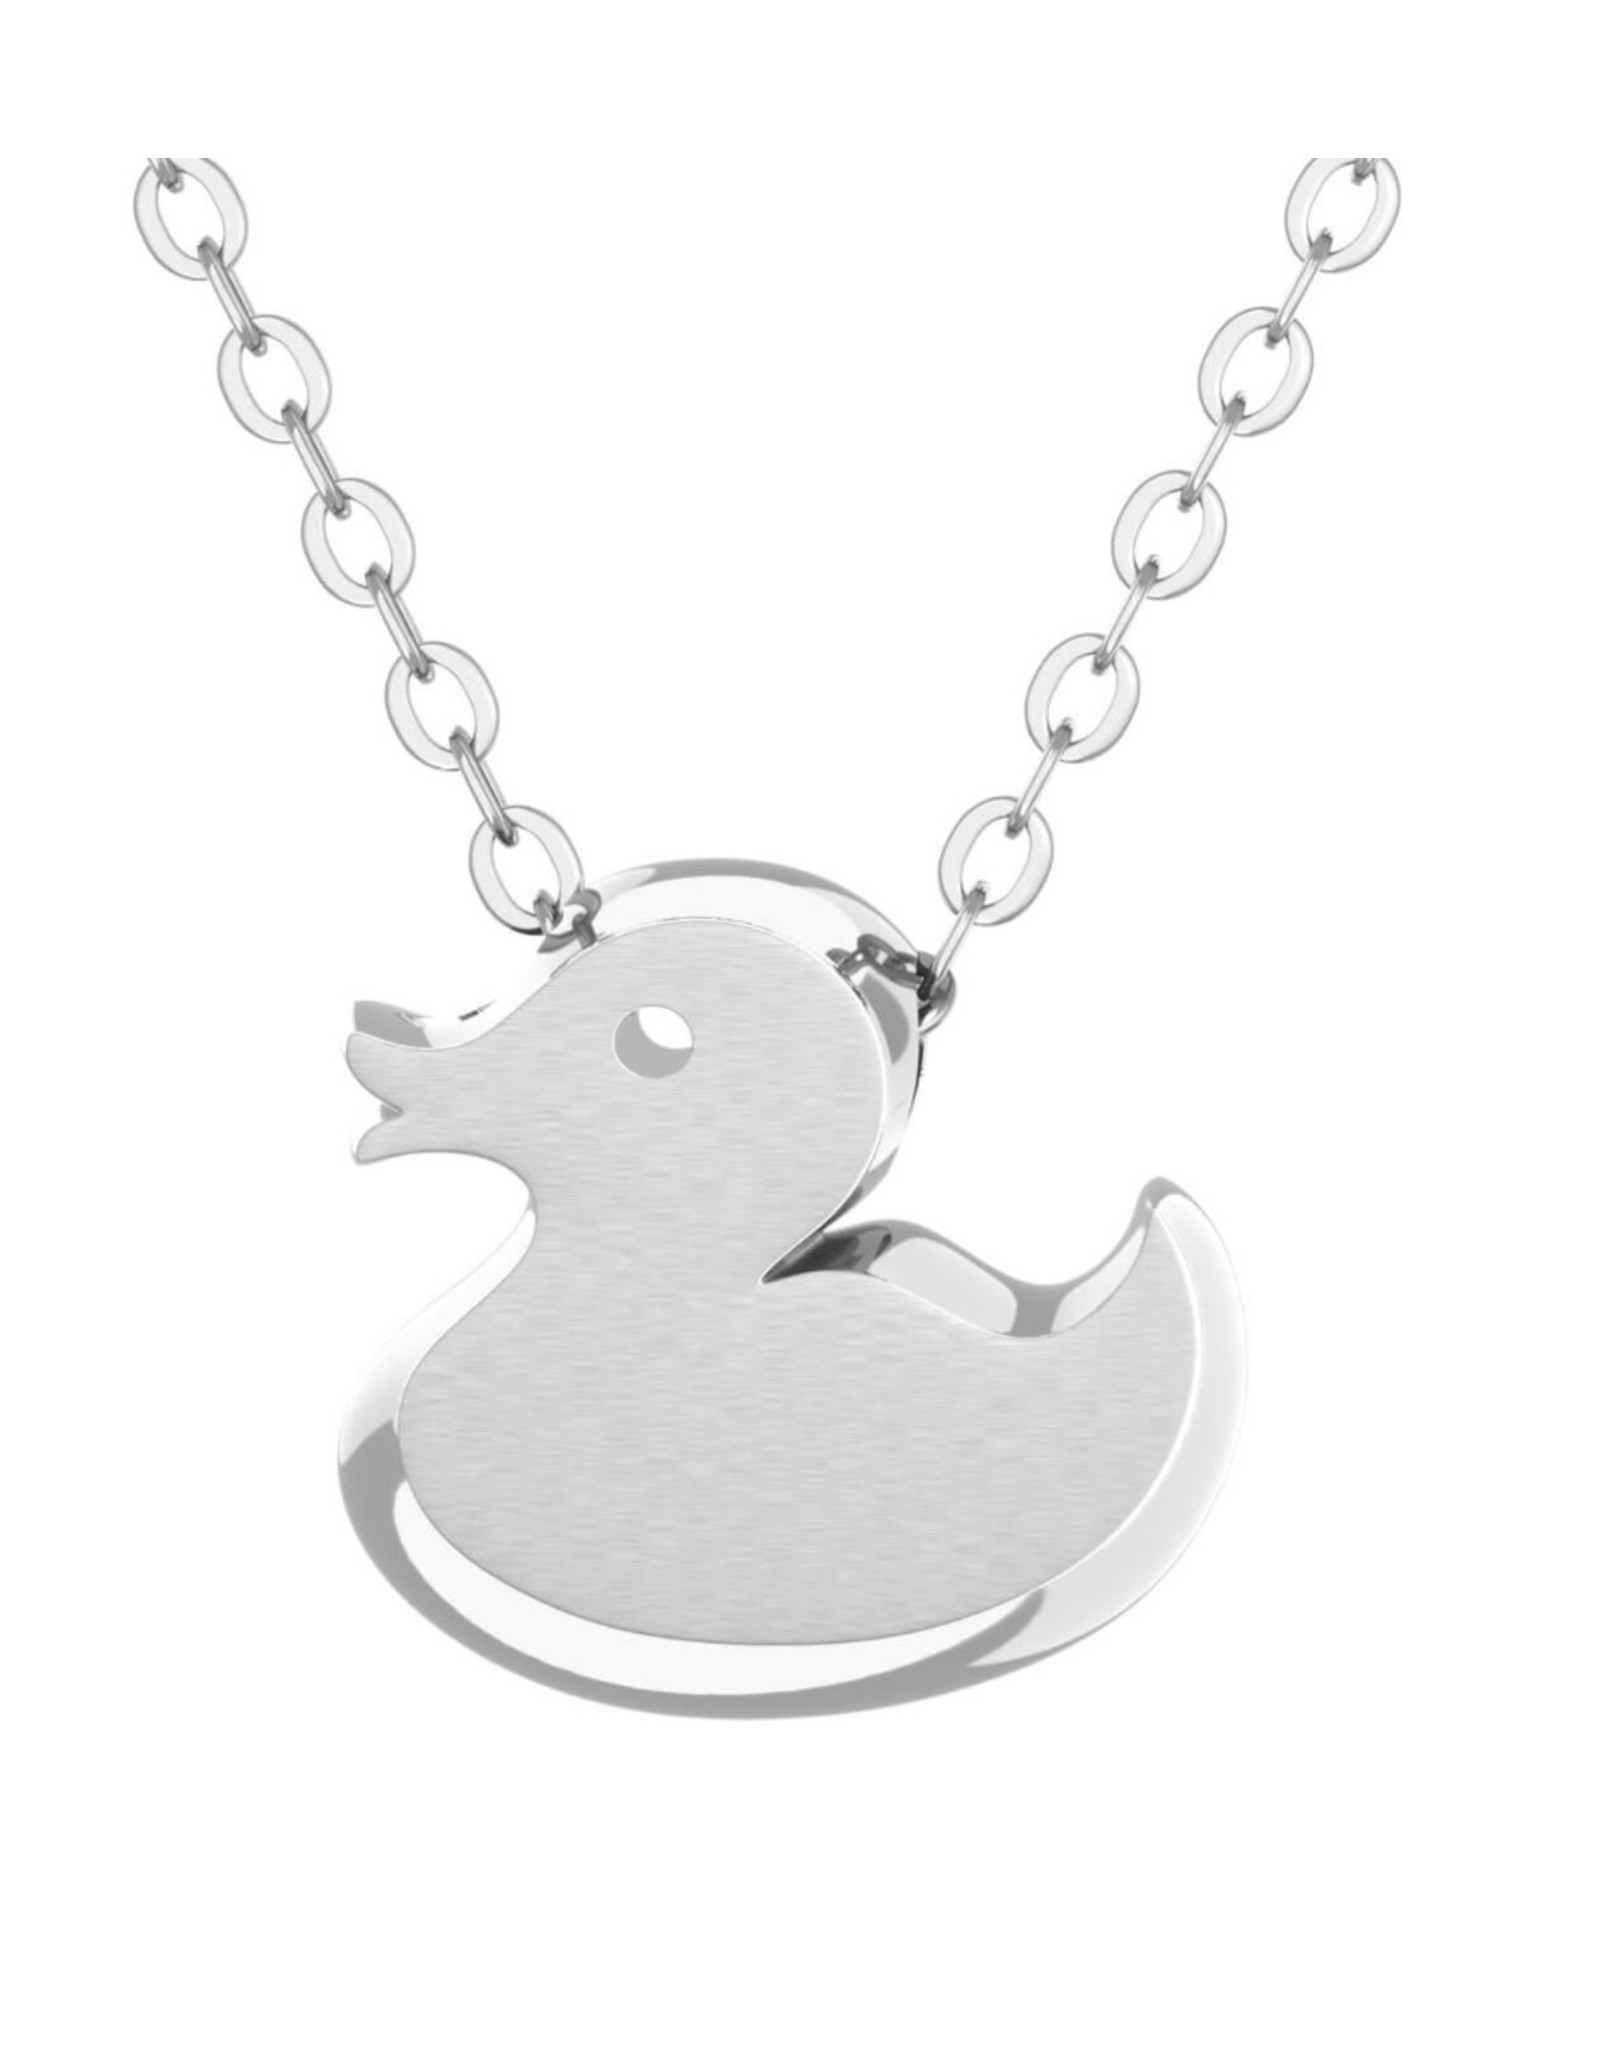 Rubber Duck Pendant & Chain - Silver